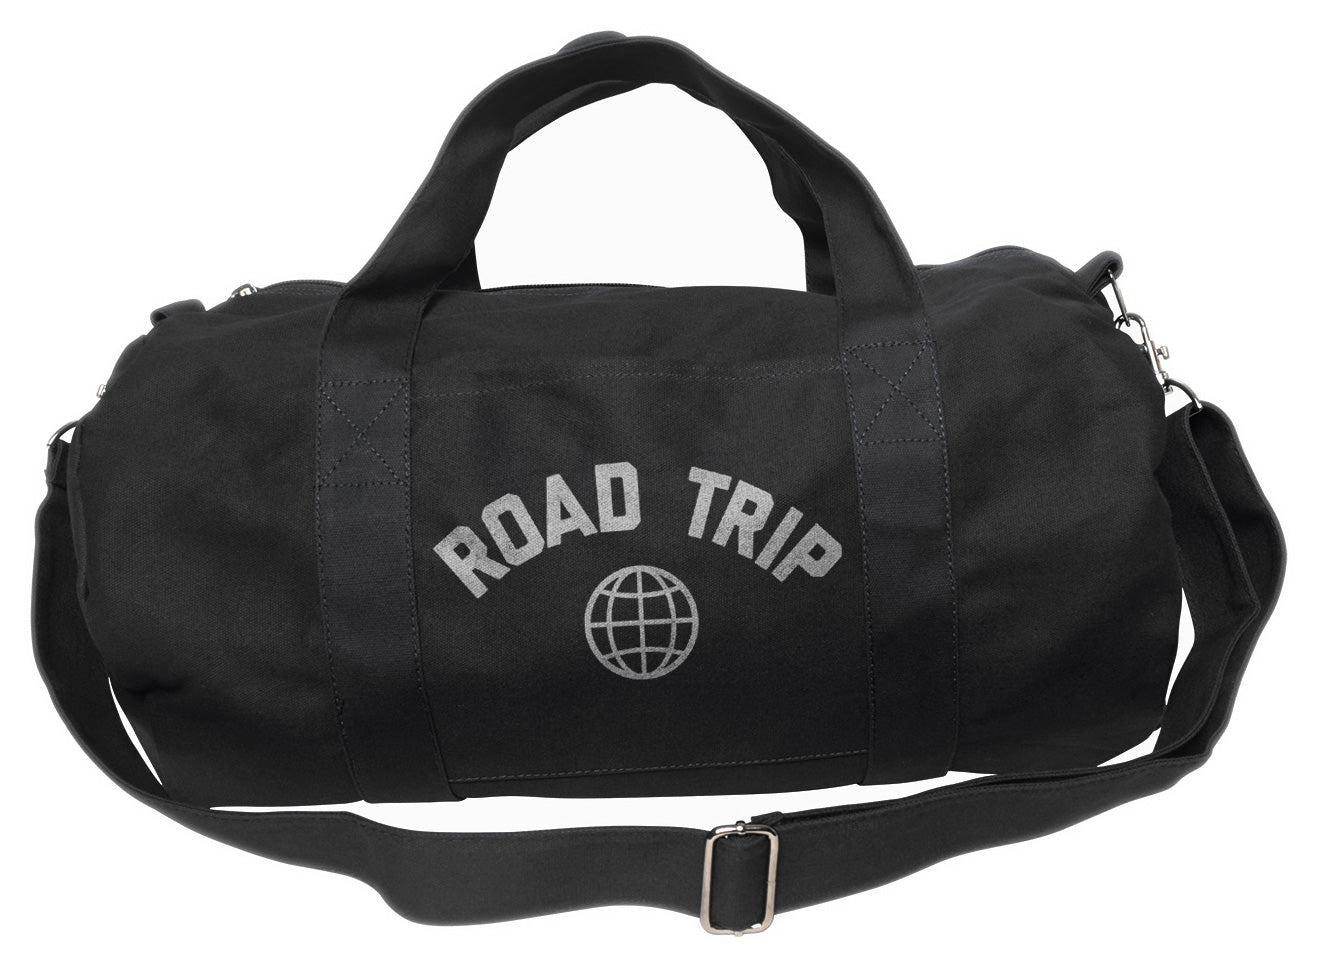 Road Trip Duffel Bag